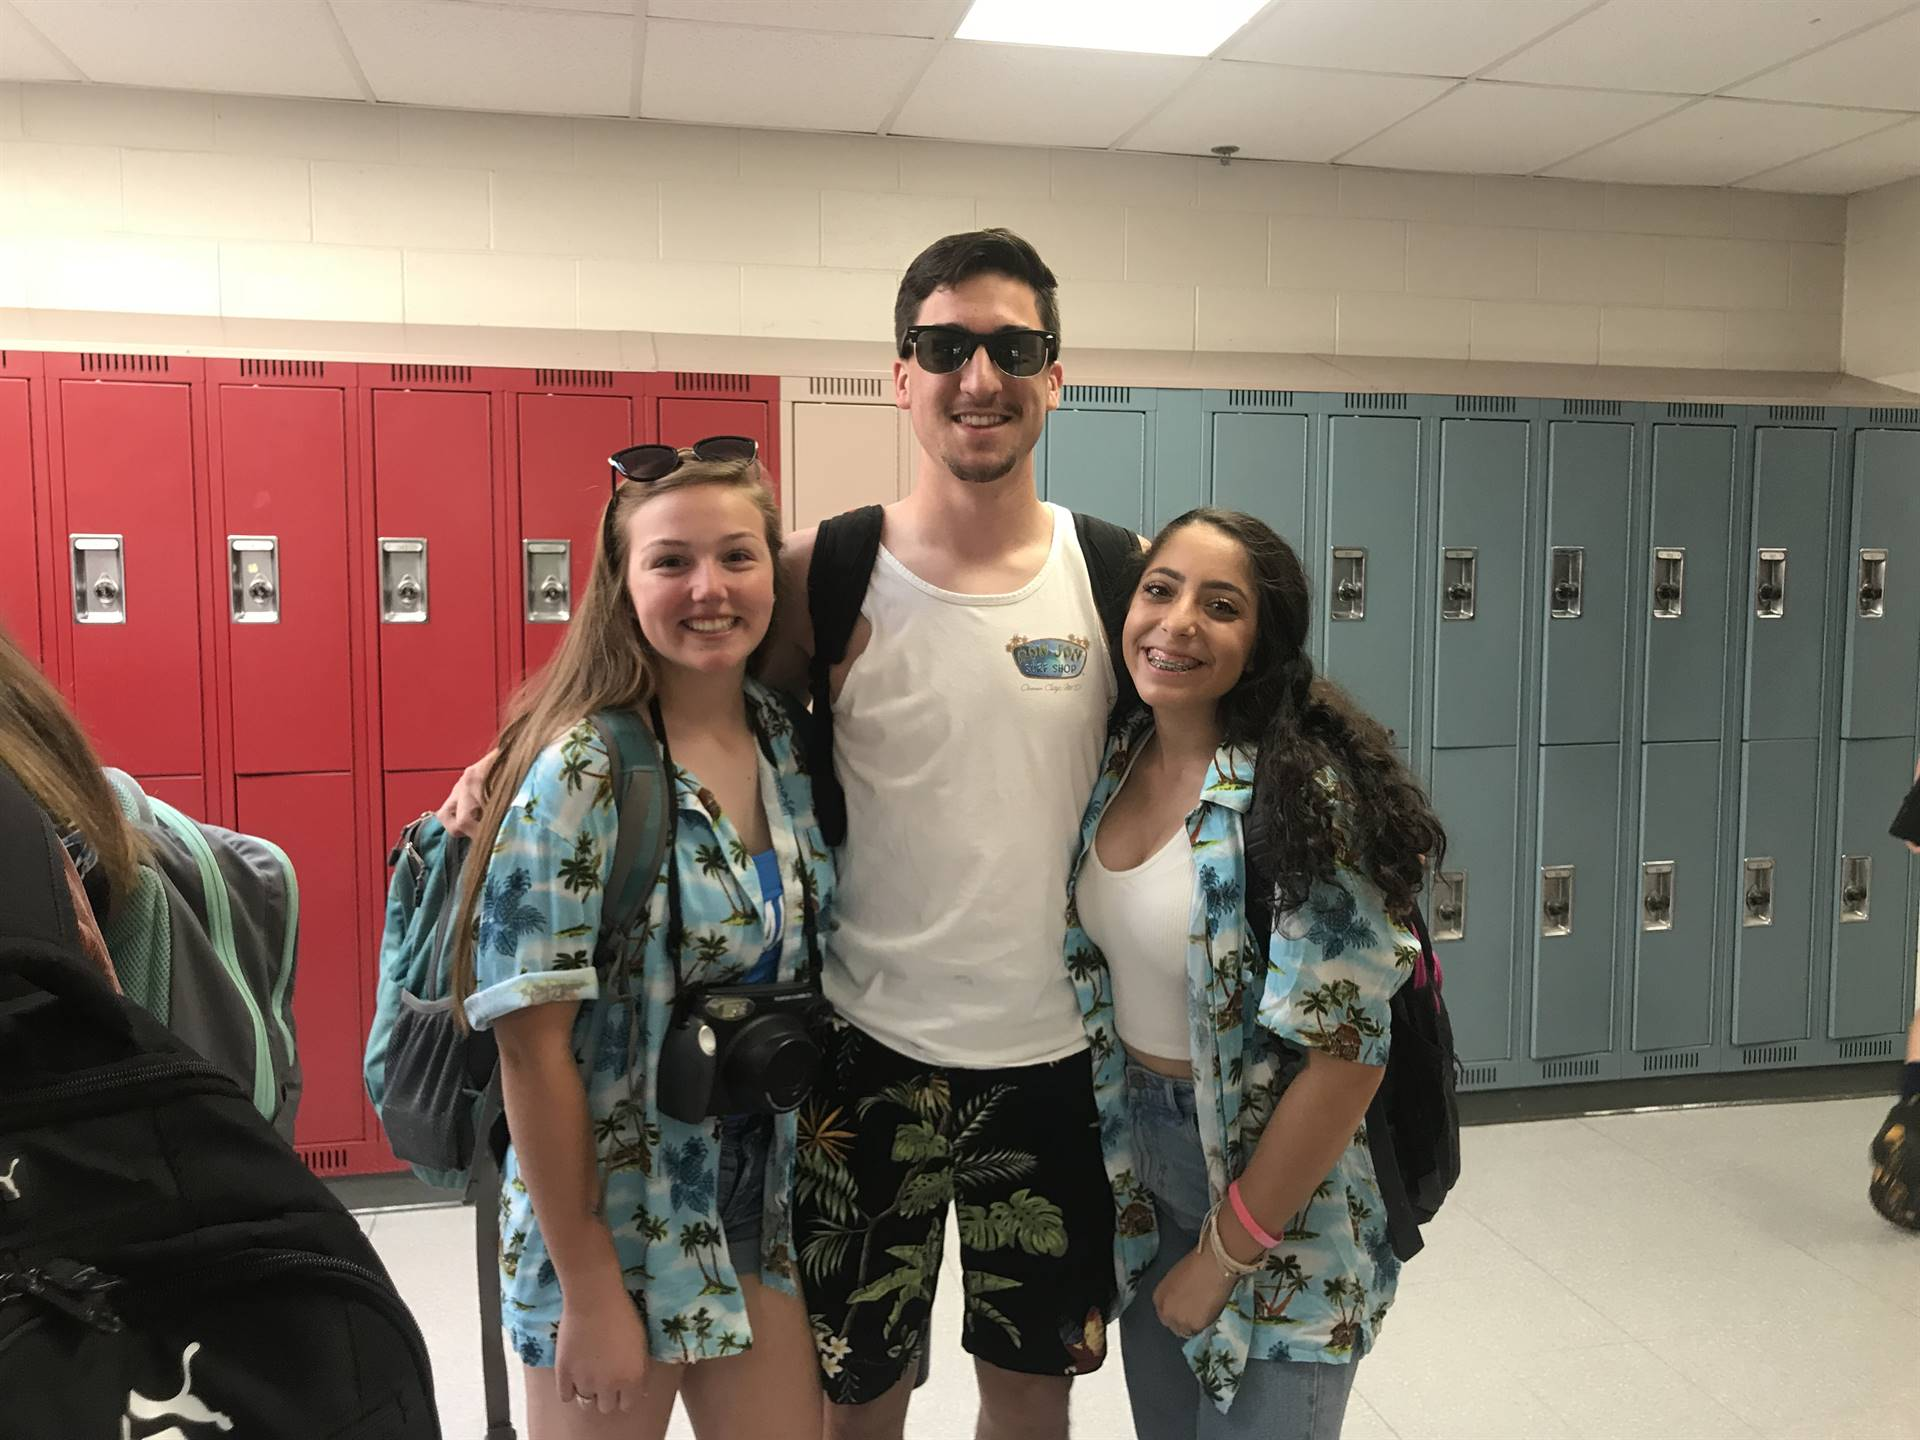 Emily G, Jake S. & Liv G. ready for the beach